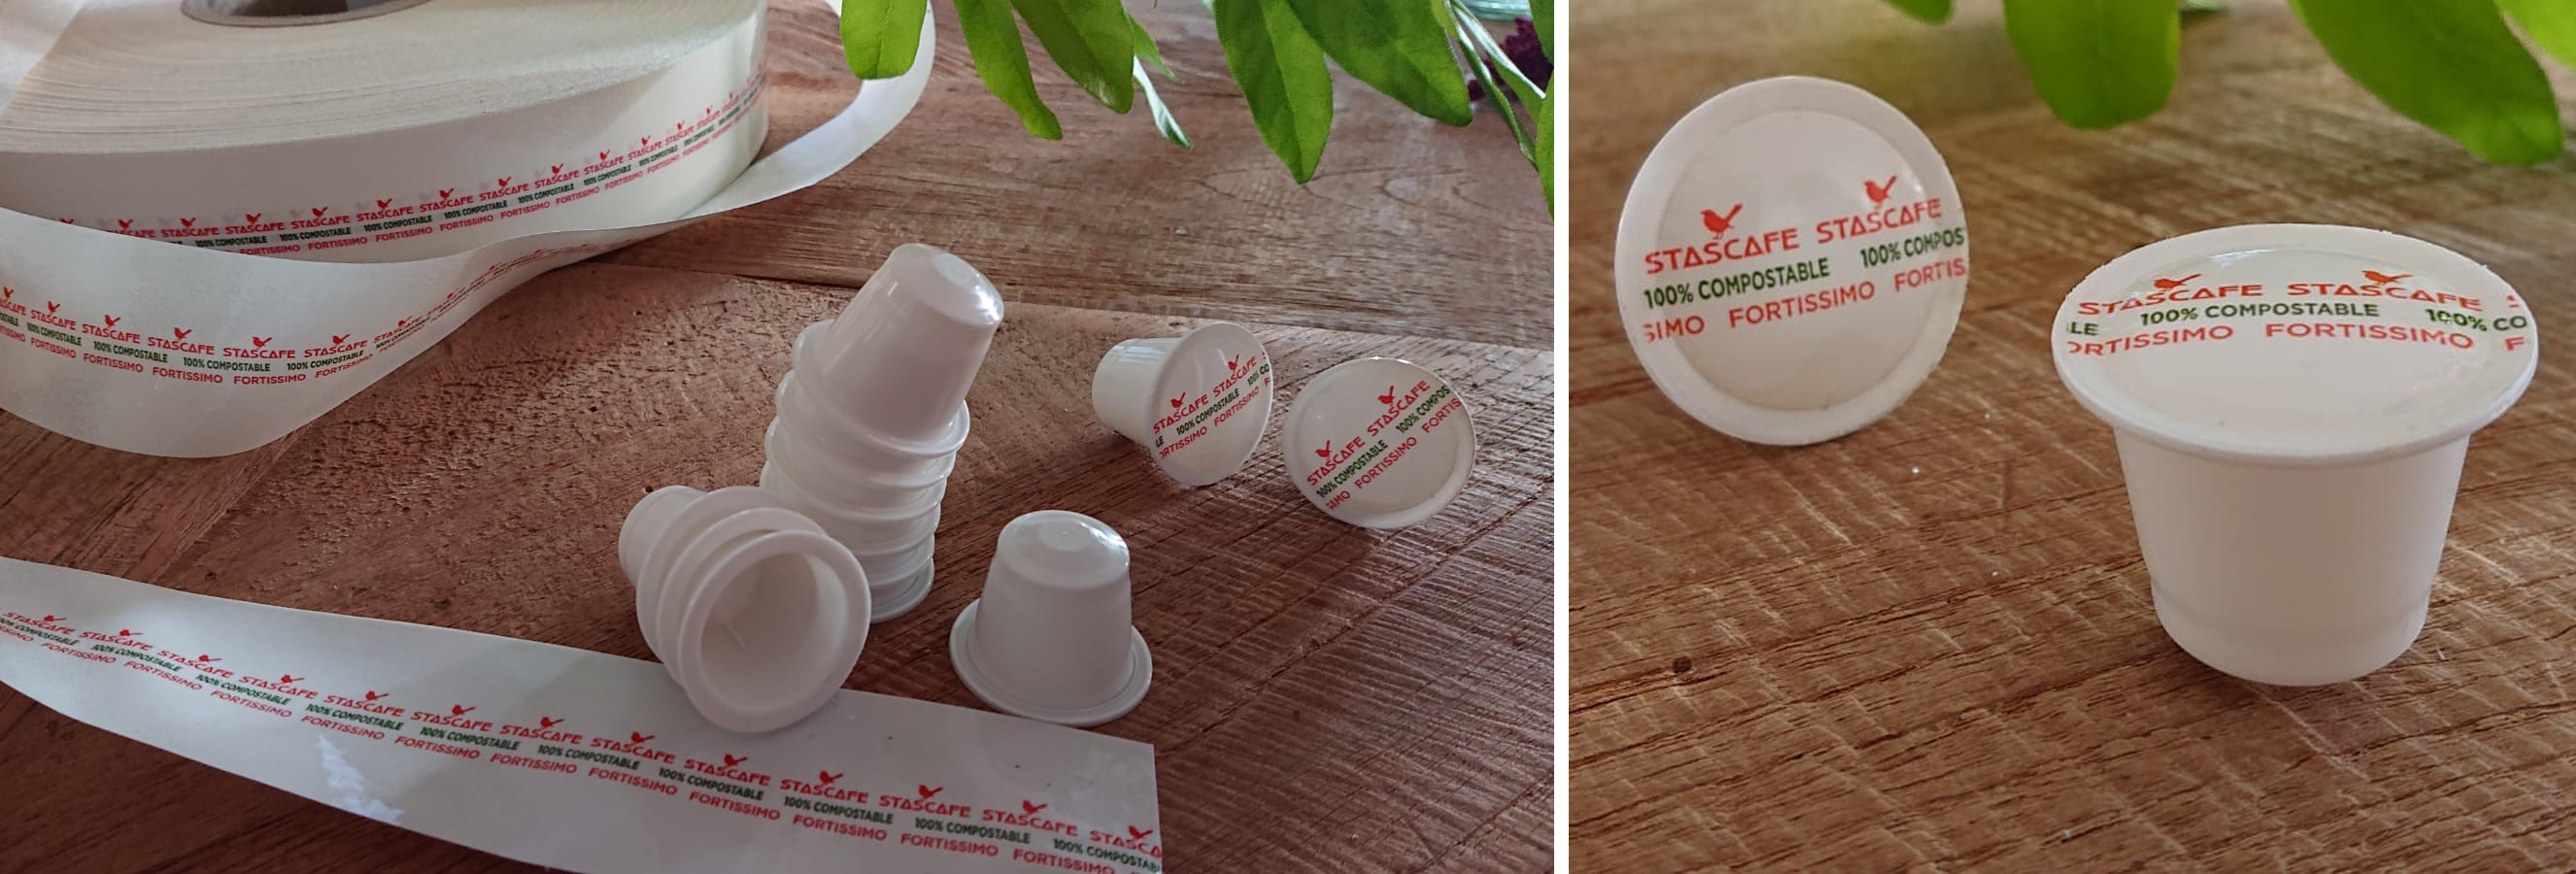 Biodegradable Nespresso coffee capsule and lidding material